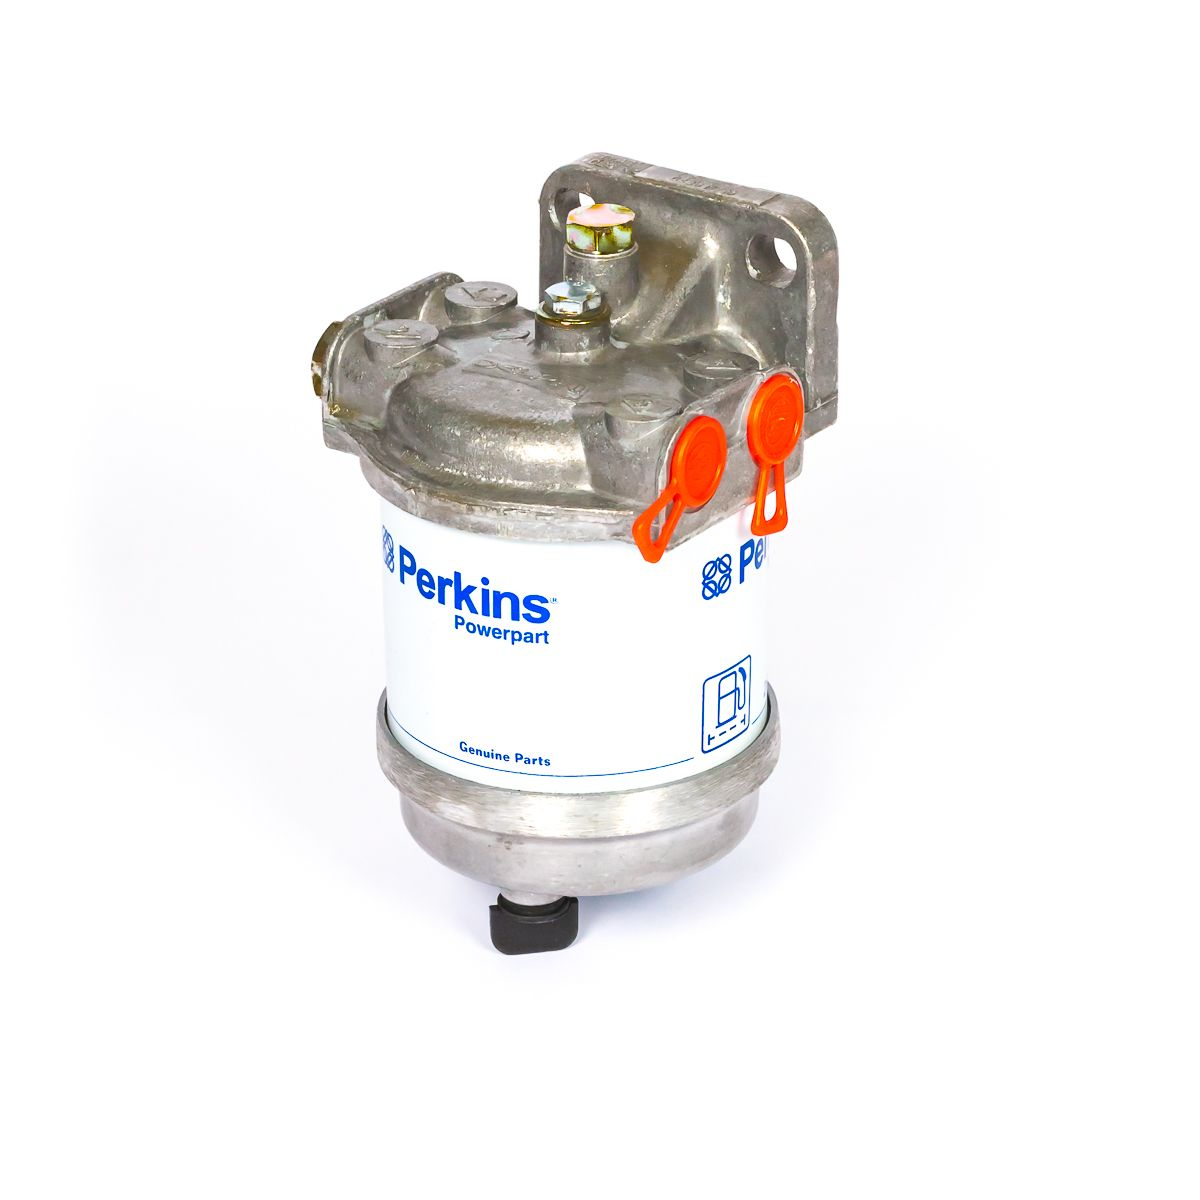 Perkins 4 236 Marine Engine additionally Vm Motori D704 Series Engines as well Perkins Feed Pumps Perkins Fuel Lift Pumps Perkins Parts furthermore Perkins Engine Wiring moreover Perkins Engine Tools. on perkins 4 108 engine parts breakdown